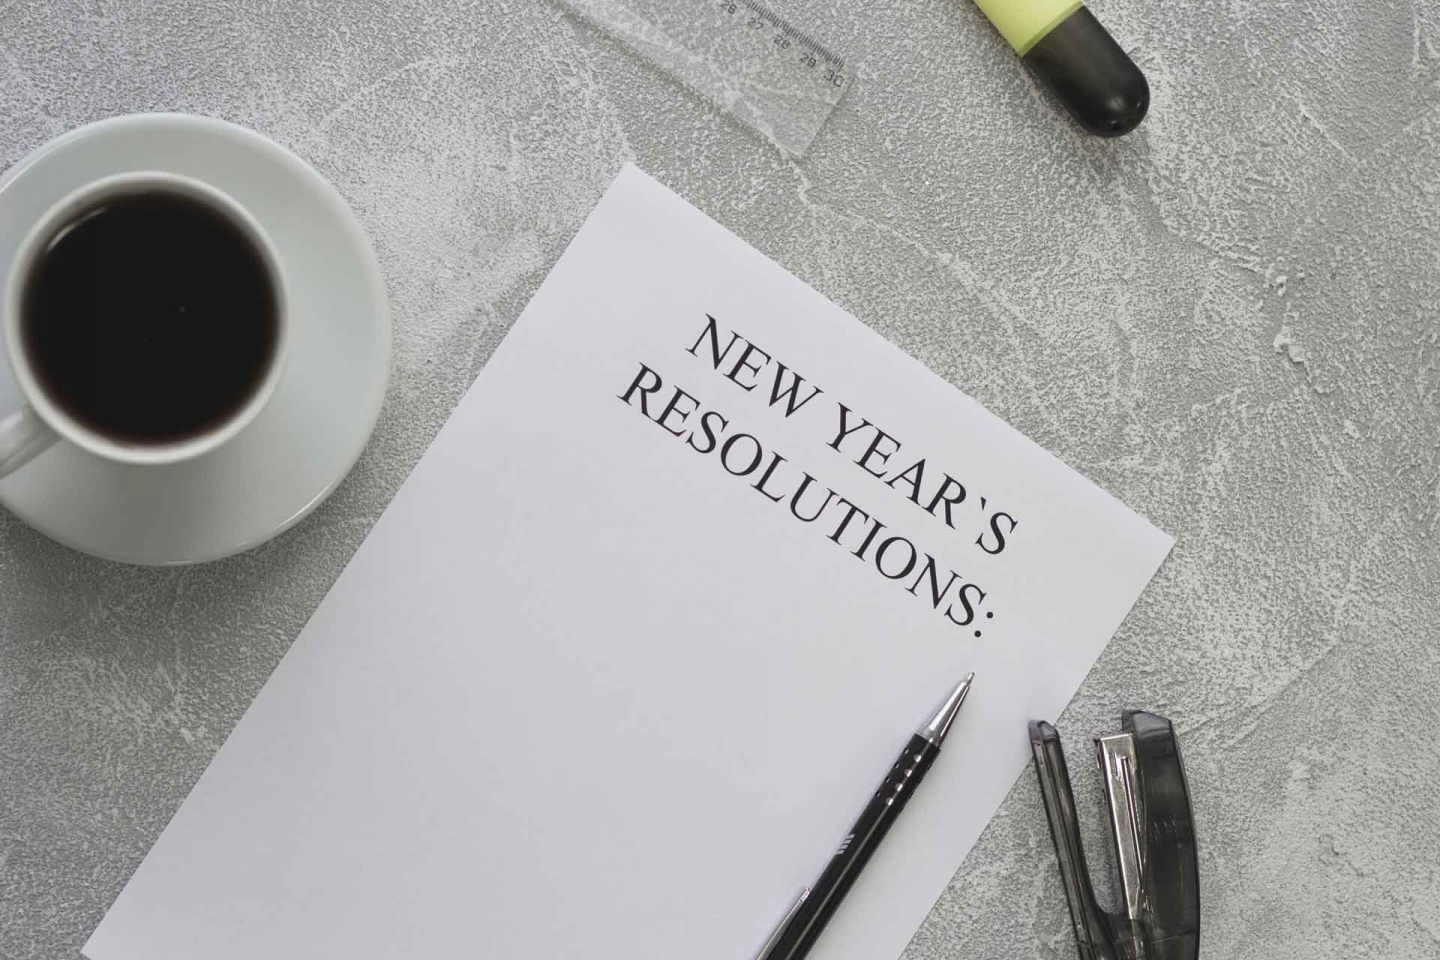 2019 new year resolutions